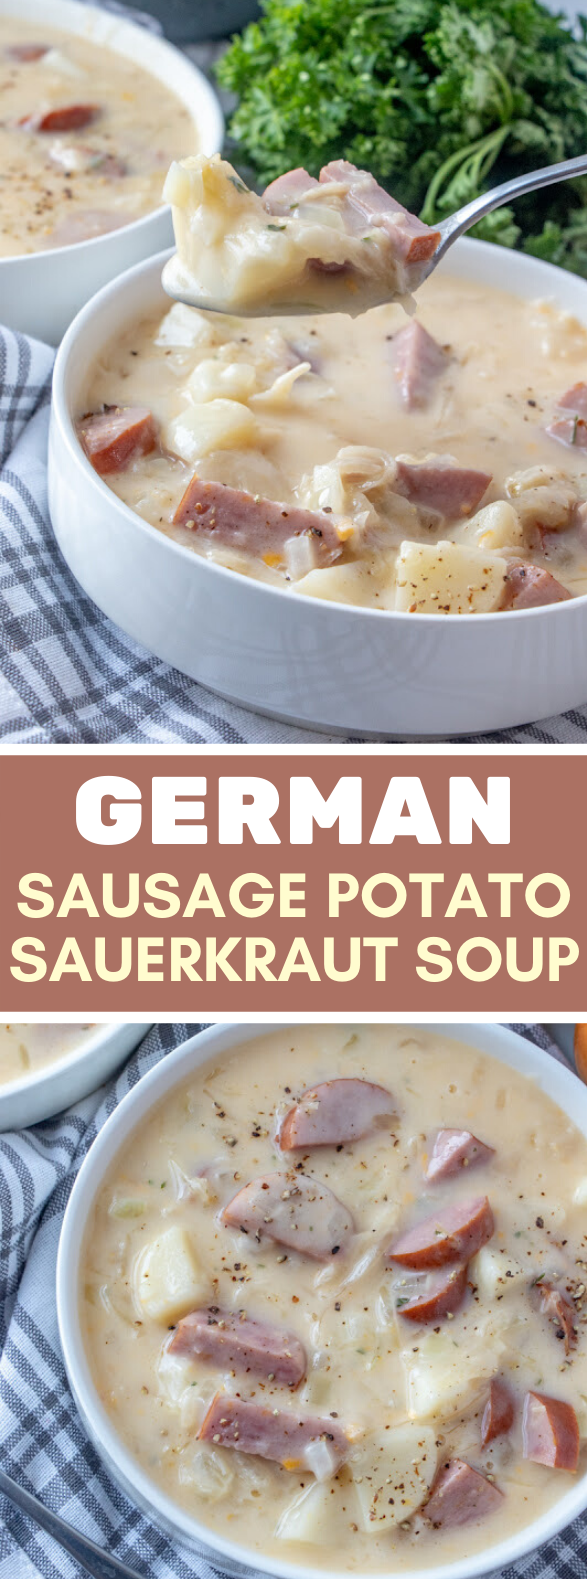 Creamy German Sausage, Potato and Sauerkraut Soup Recipe #lunch #dinner